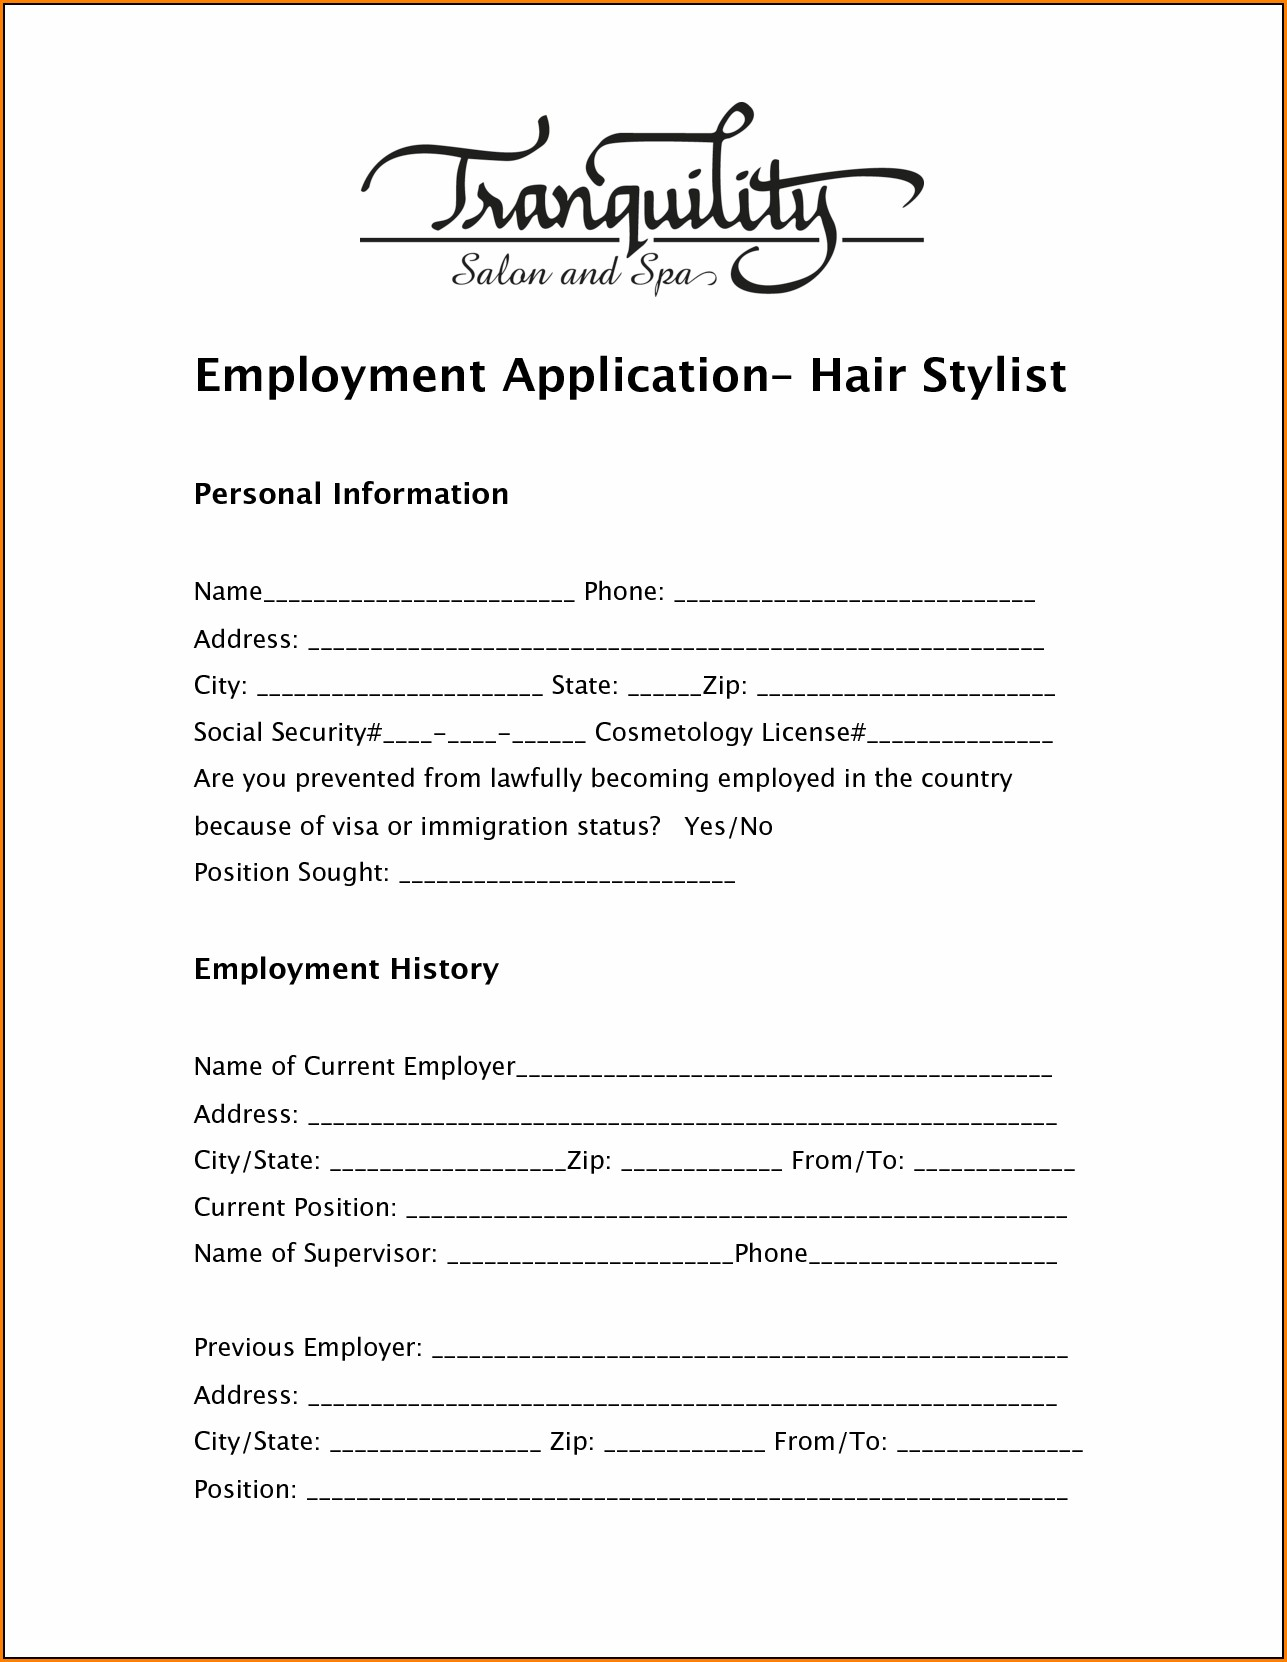 salon-job-application Job Application Form Safeway on free generic, part time, blank generic,